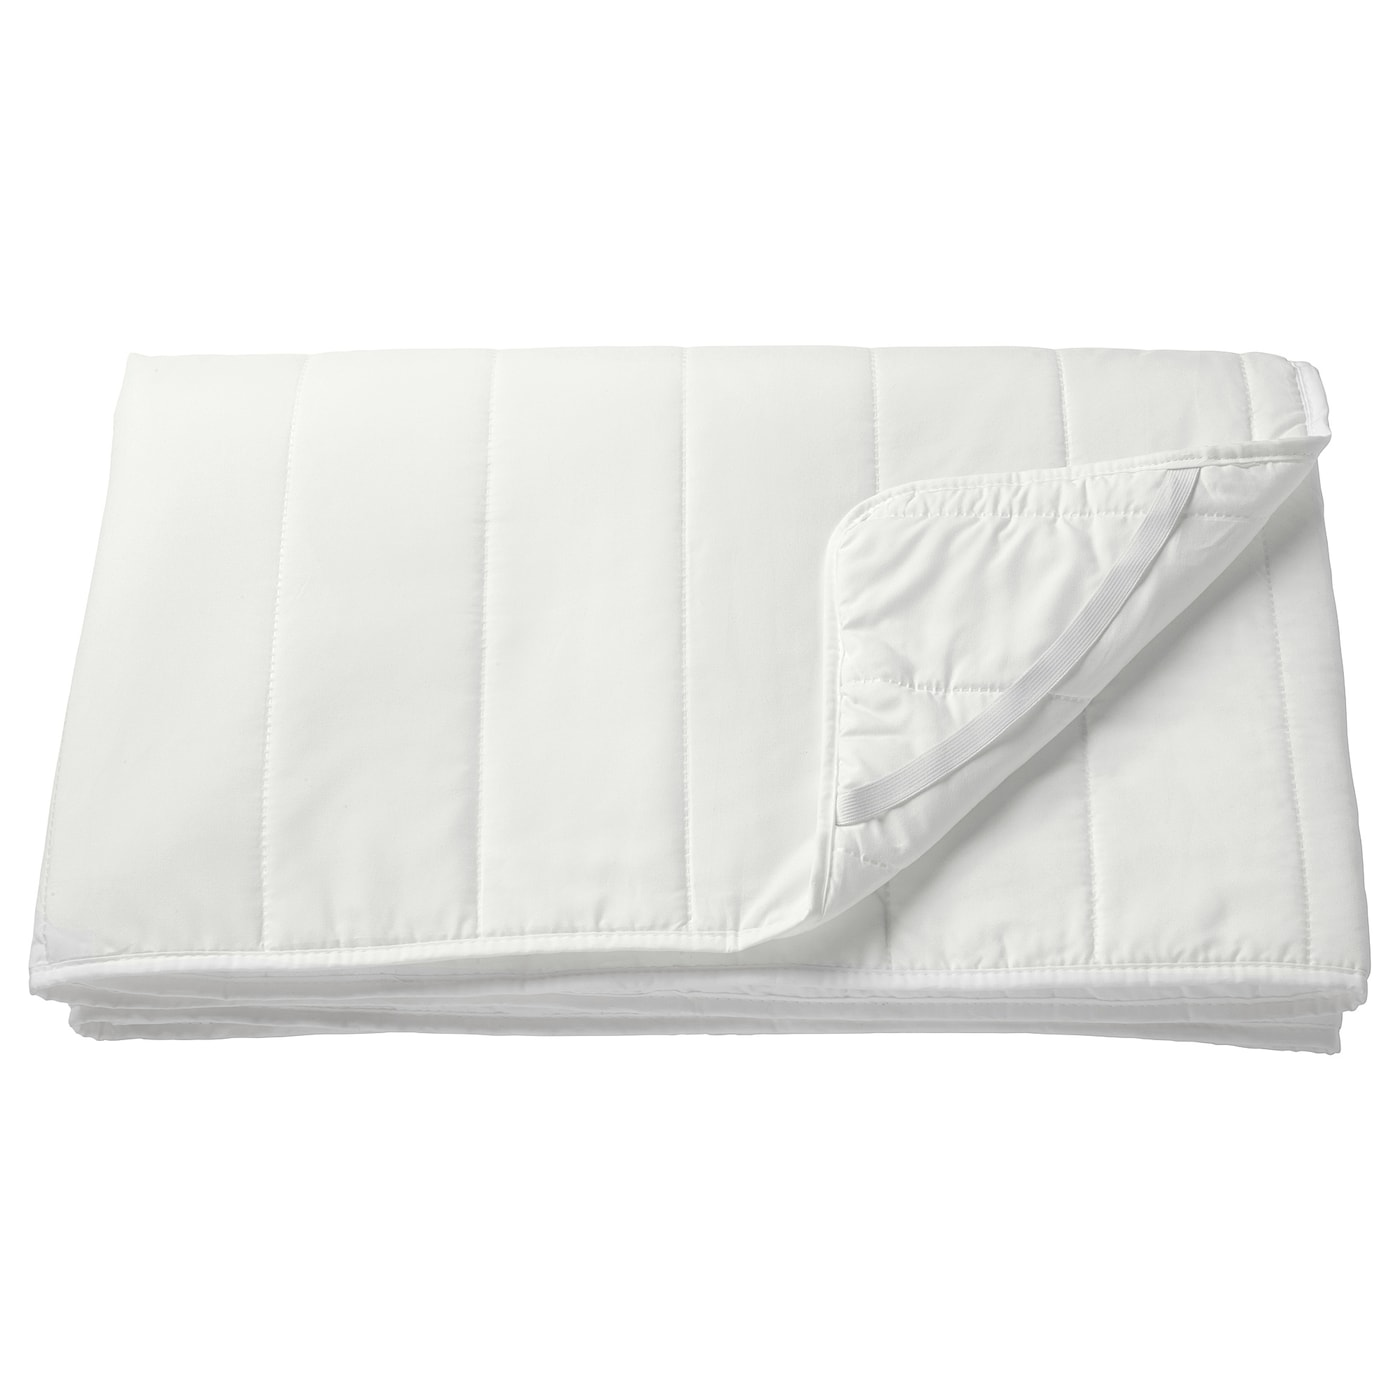 nattlig protection matelas tanche blanc 80x200 cm ikea. Black Bedroom Furniture Sets. Home Design Ideas